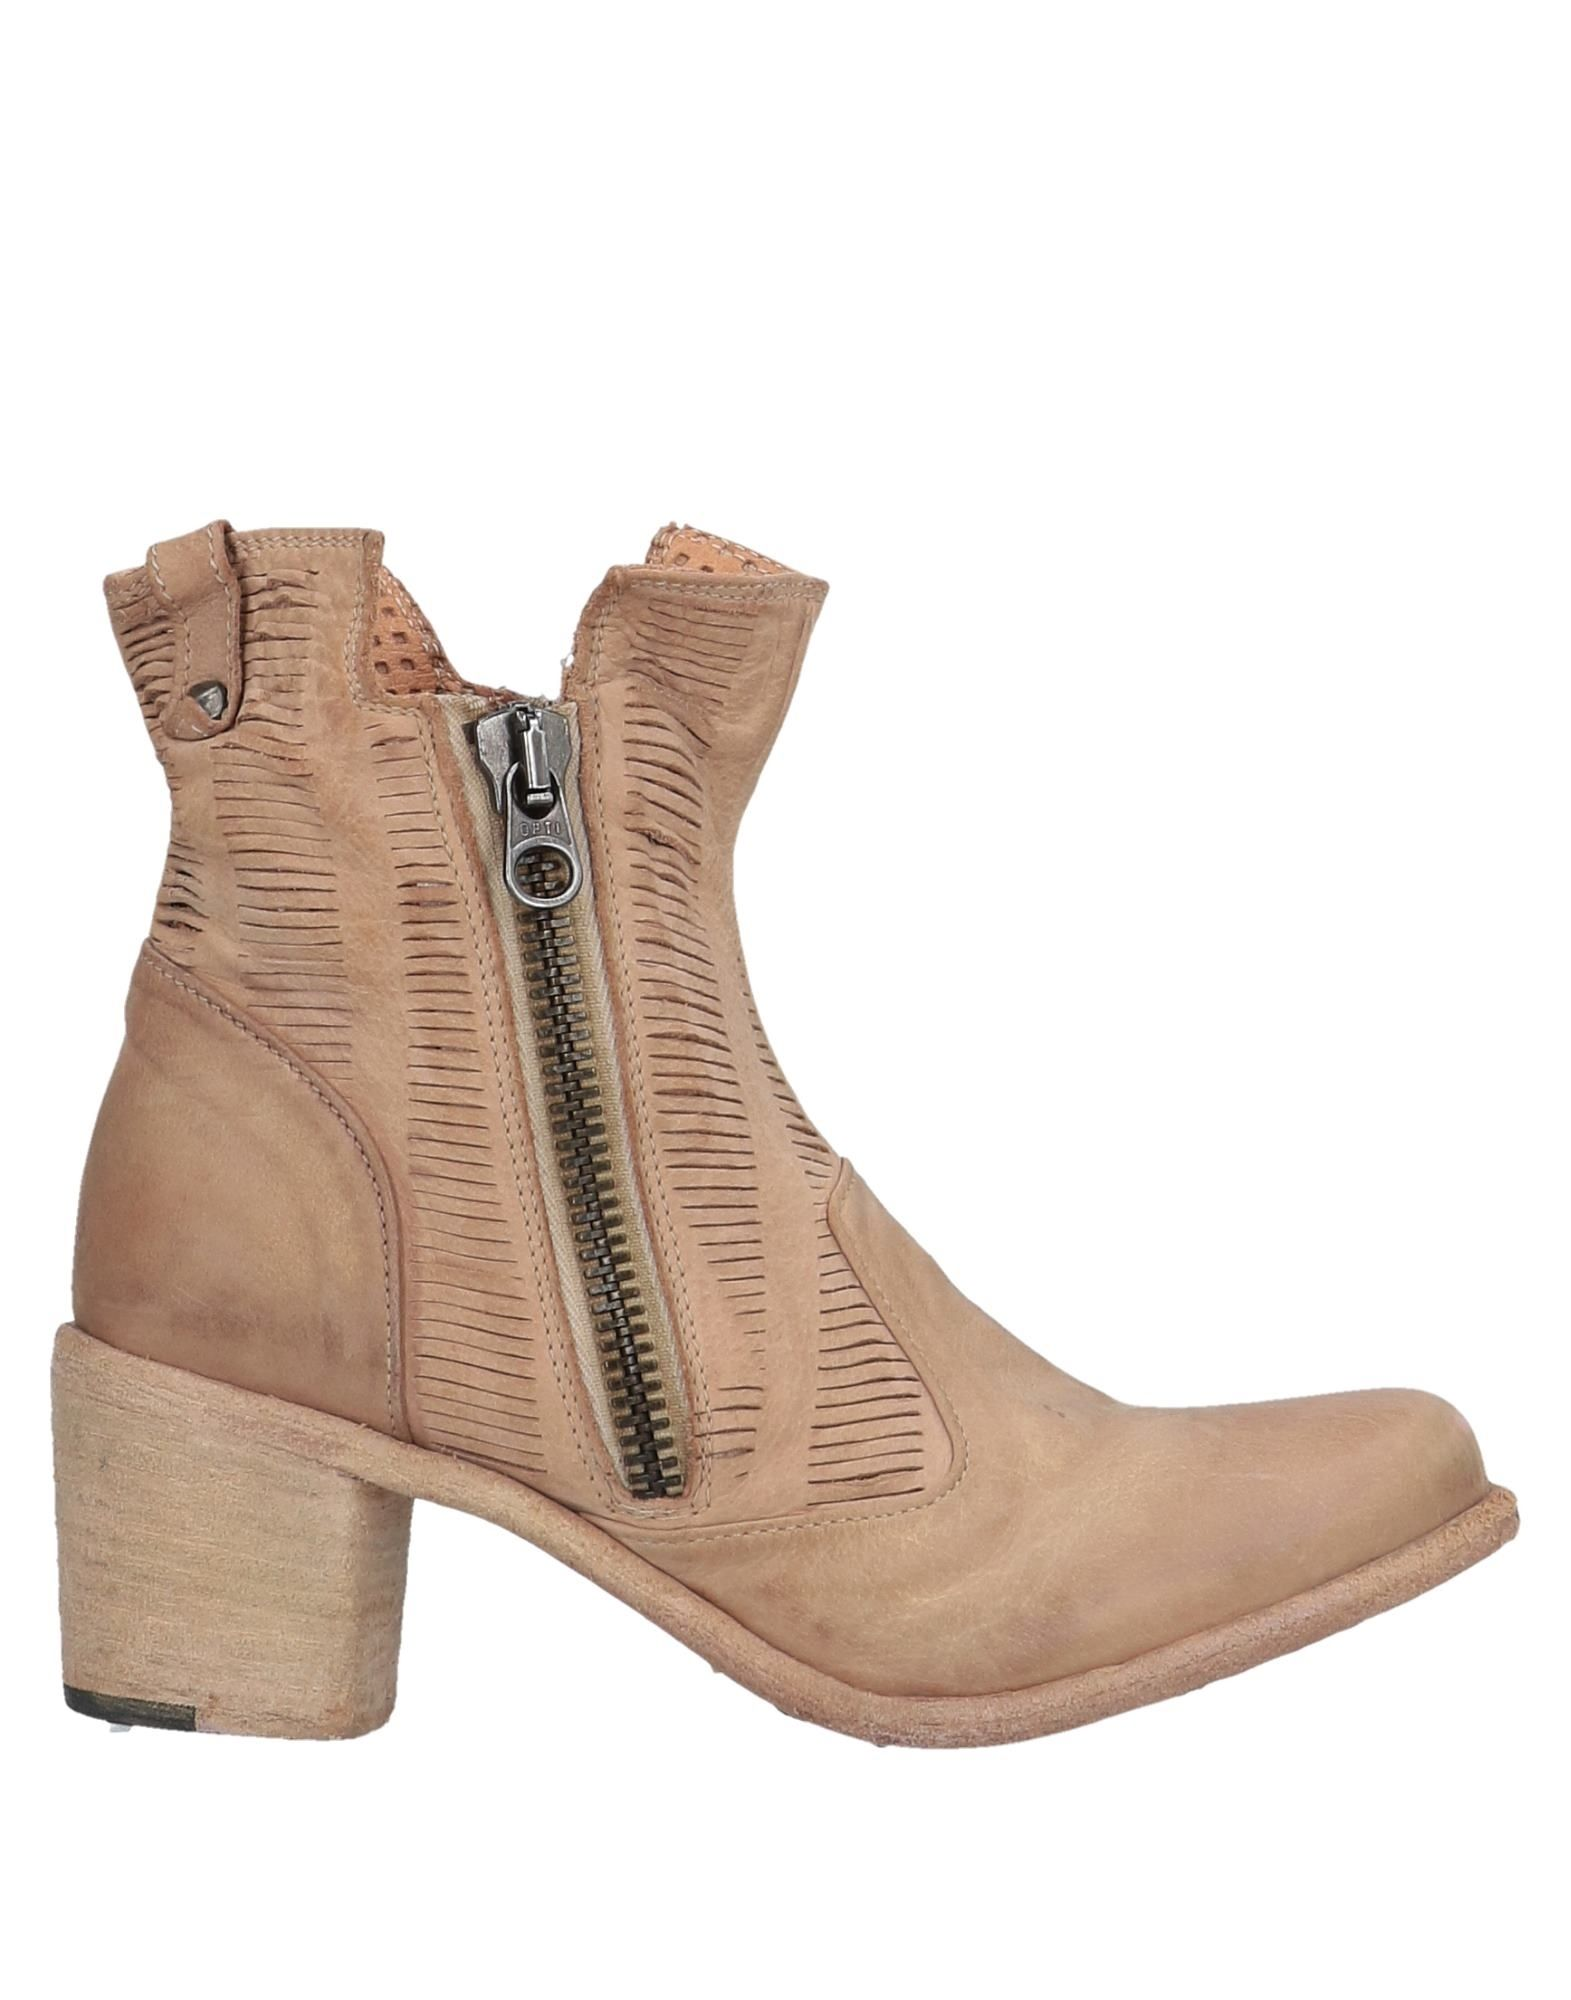 NYLO Ankle Boot in Beige